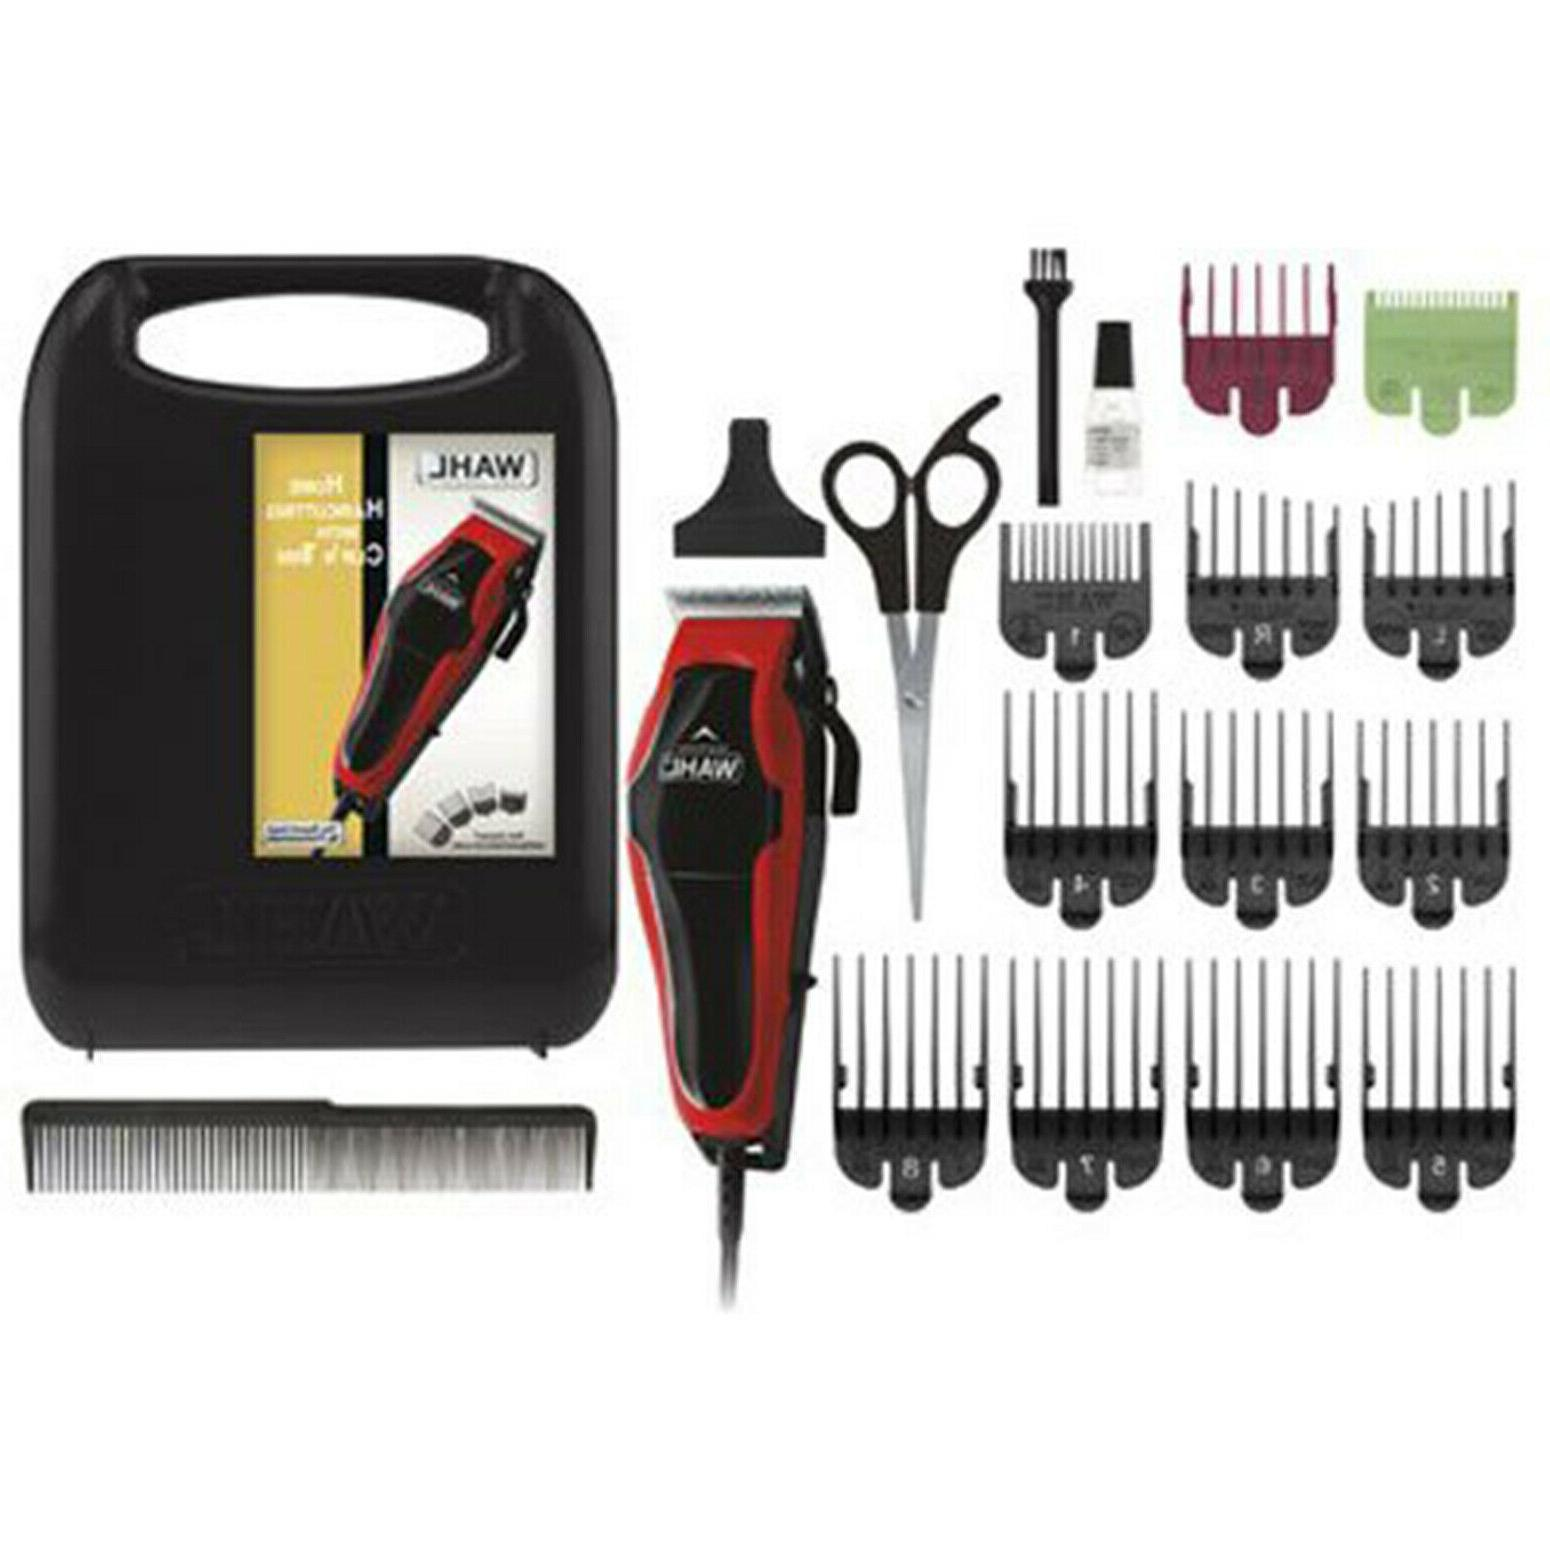 Wahl Professional Hair Machine Salon Cutting Clippers Trimmer